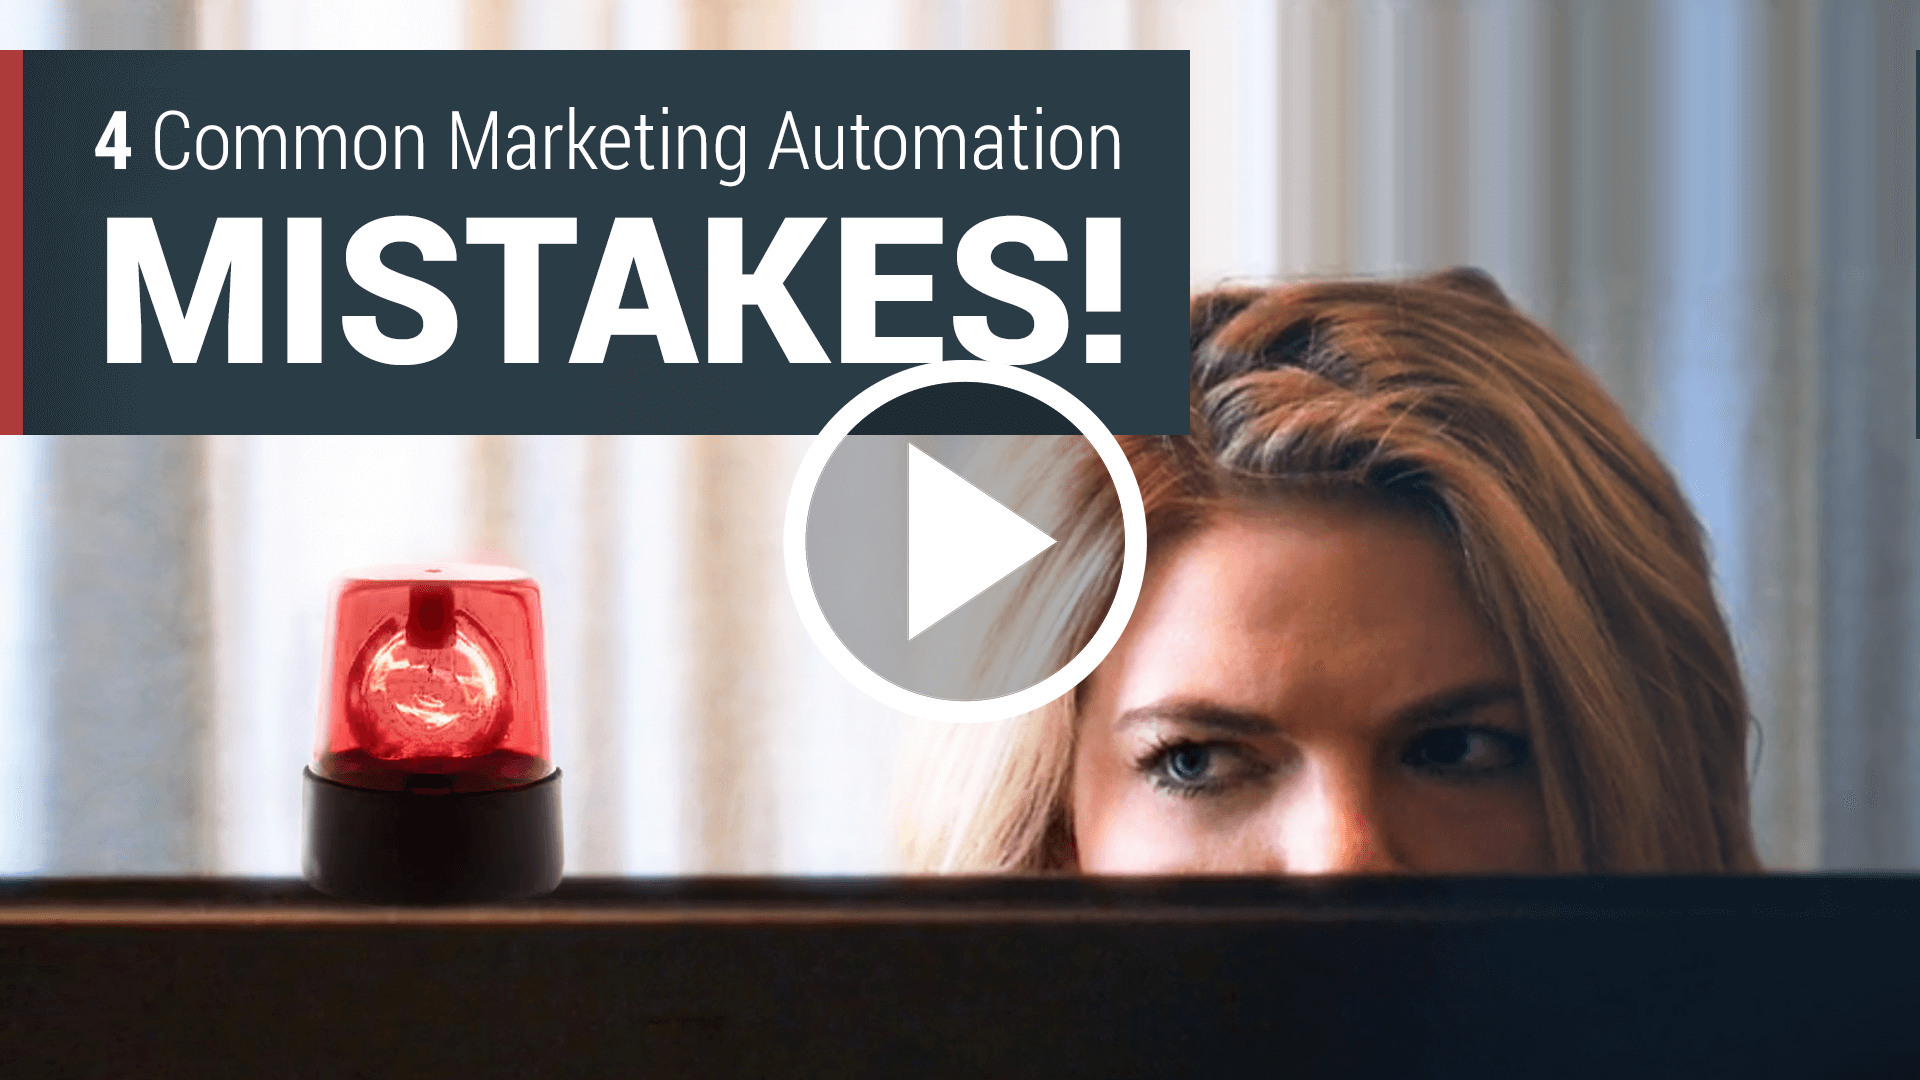 Marketing automation mistakes is our most popular blog post from 2017